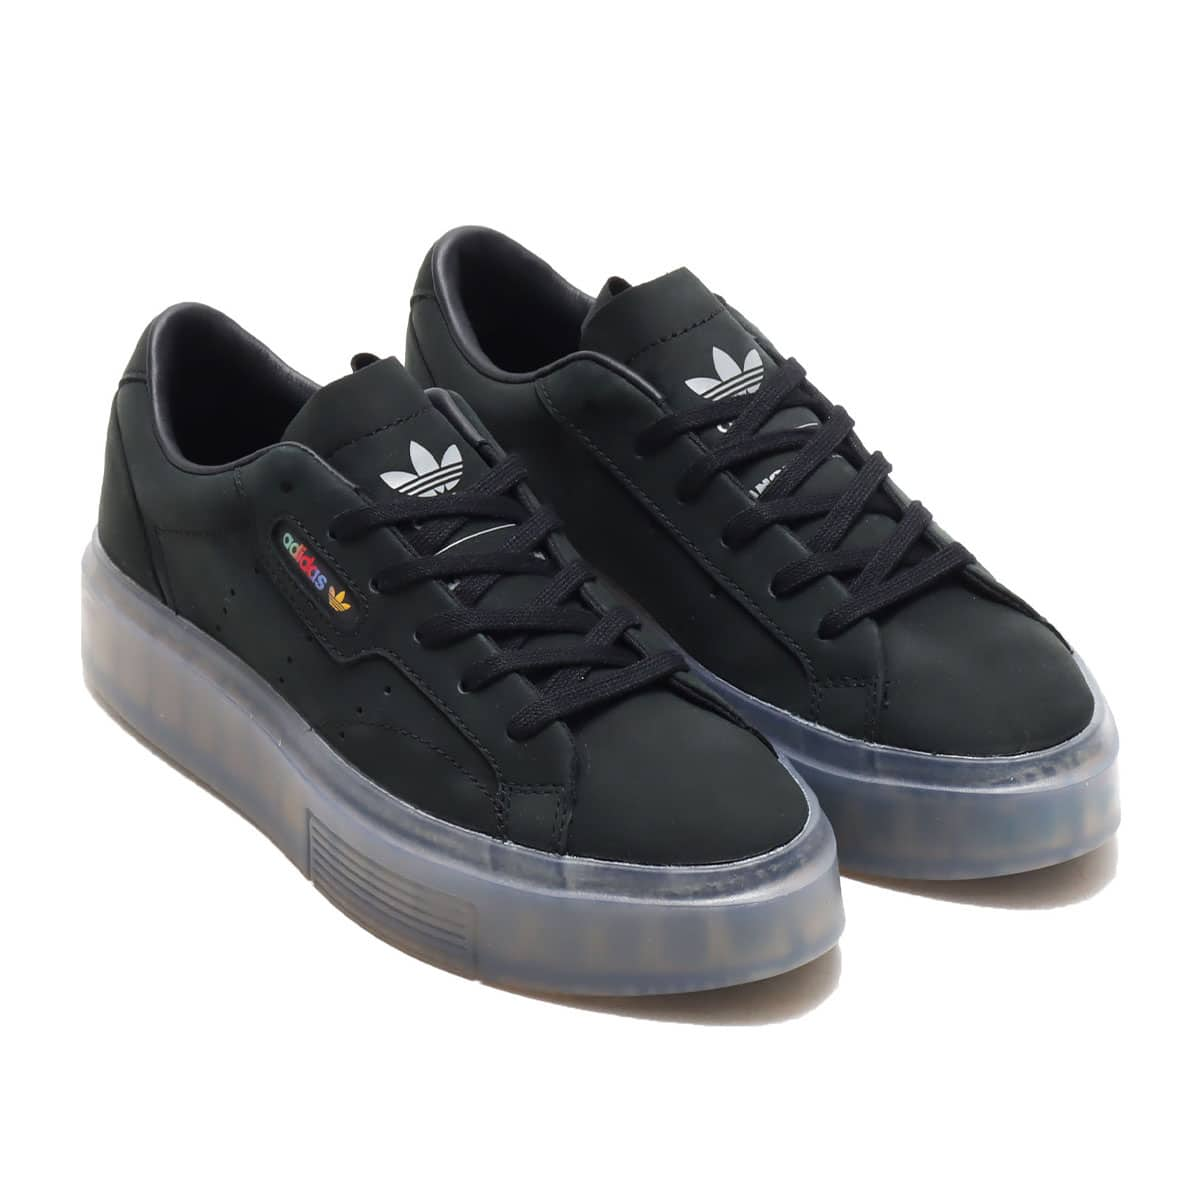 ANGEL CHEN x adidas SLEEK SUPER W AC CORE BLACK/CORE BLACK/DOVE GREY 20SS-S_photo_large